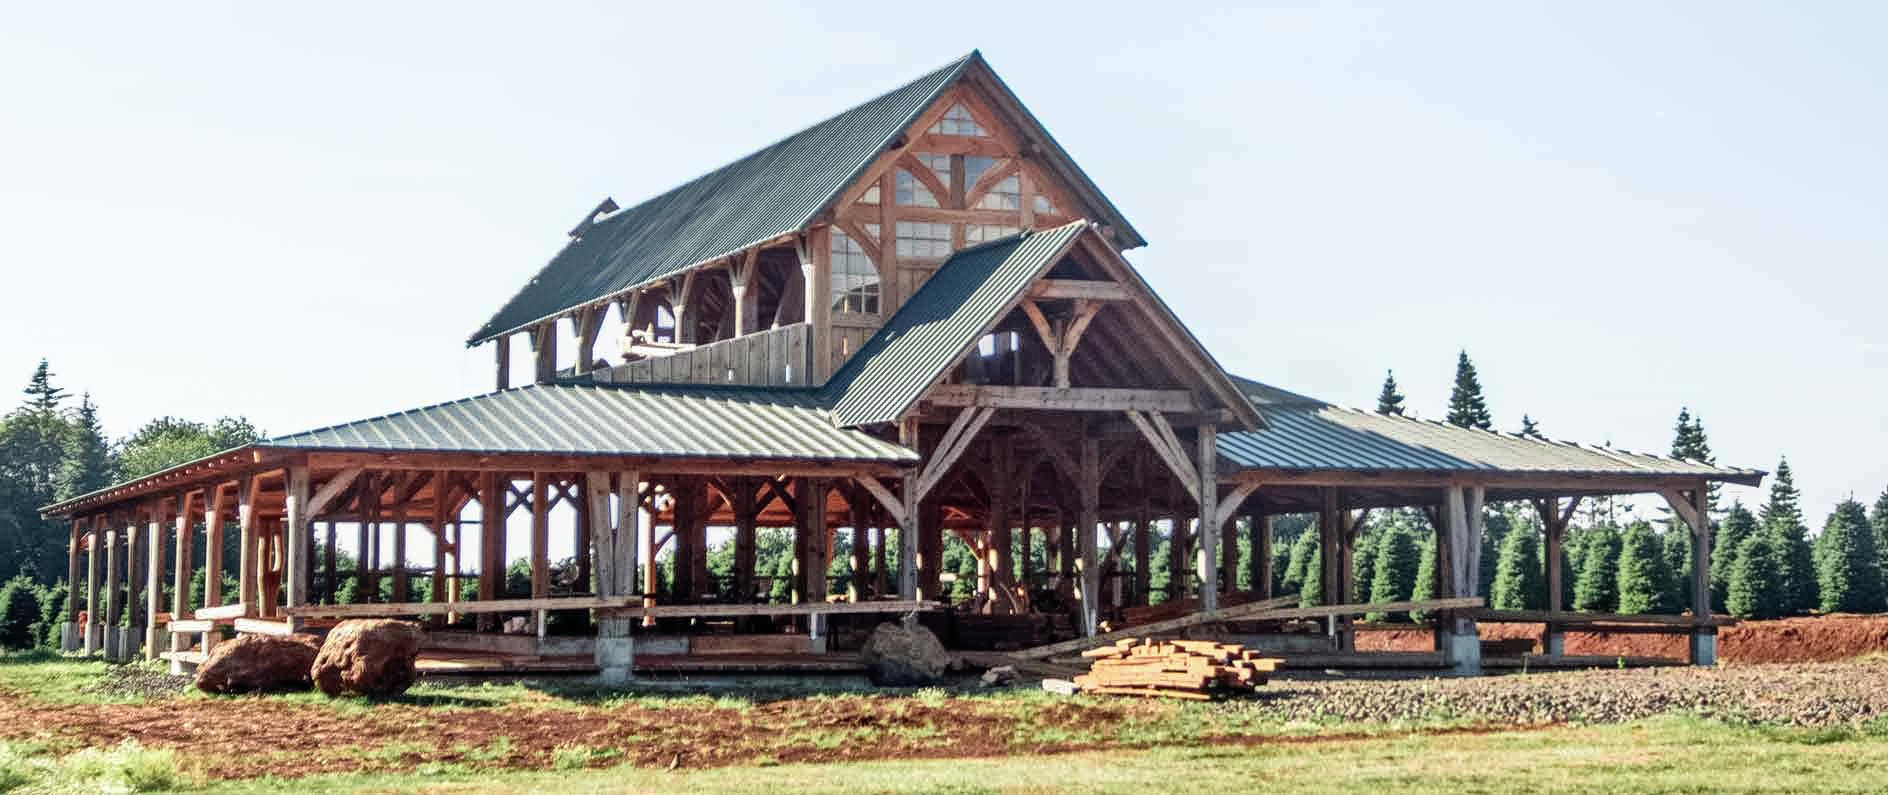 Oregon timber frame barn 2014 the shelter blog for Cost of building a house in montana